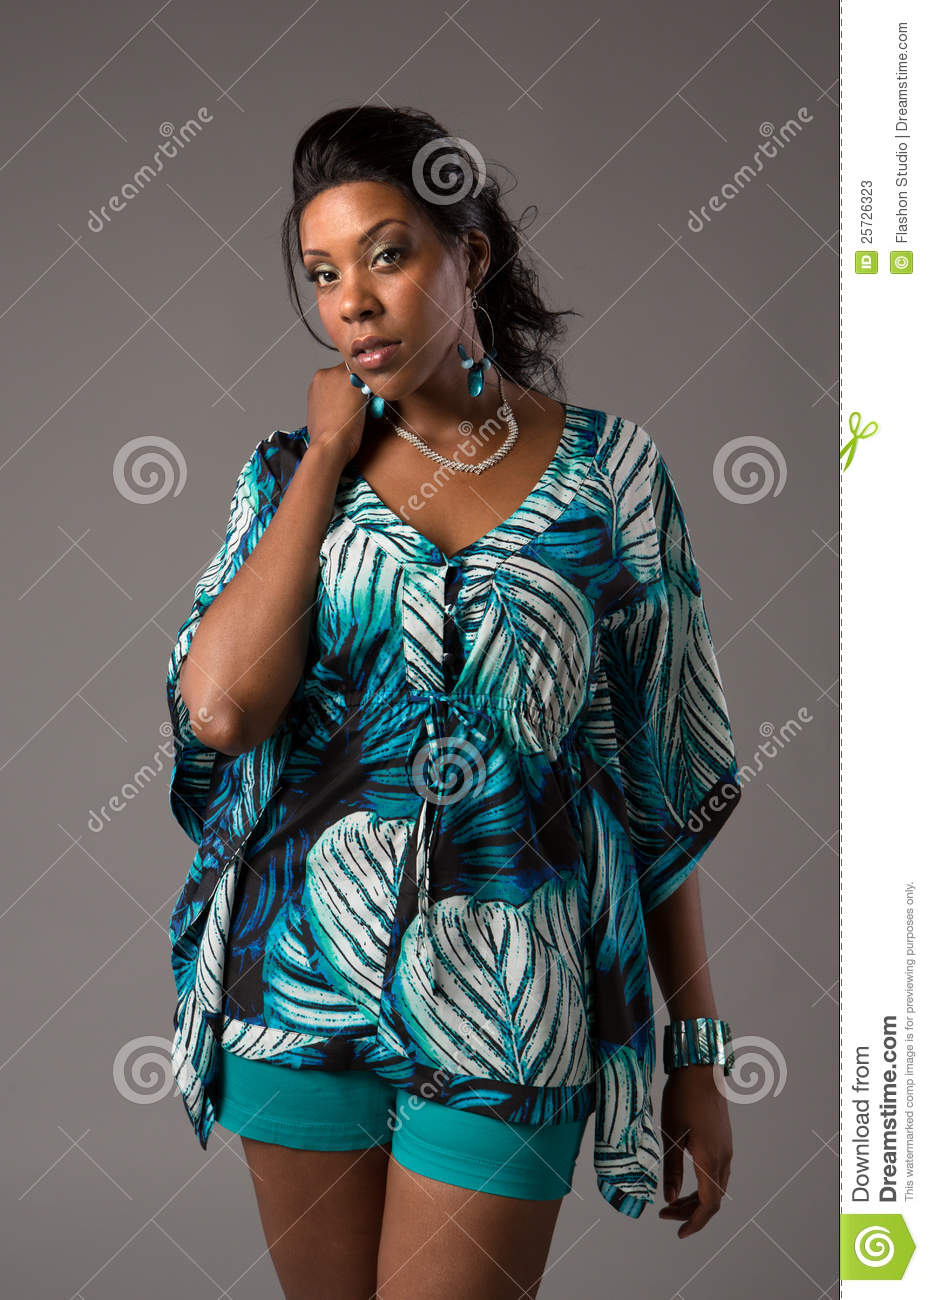 African Yellow Hair Plus Size Young African American Woman Portrait Stock